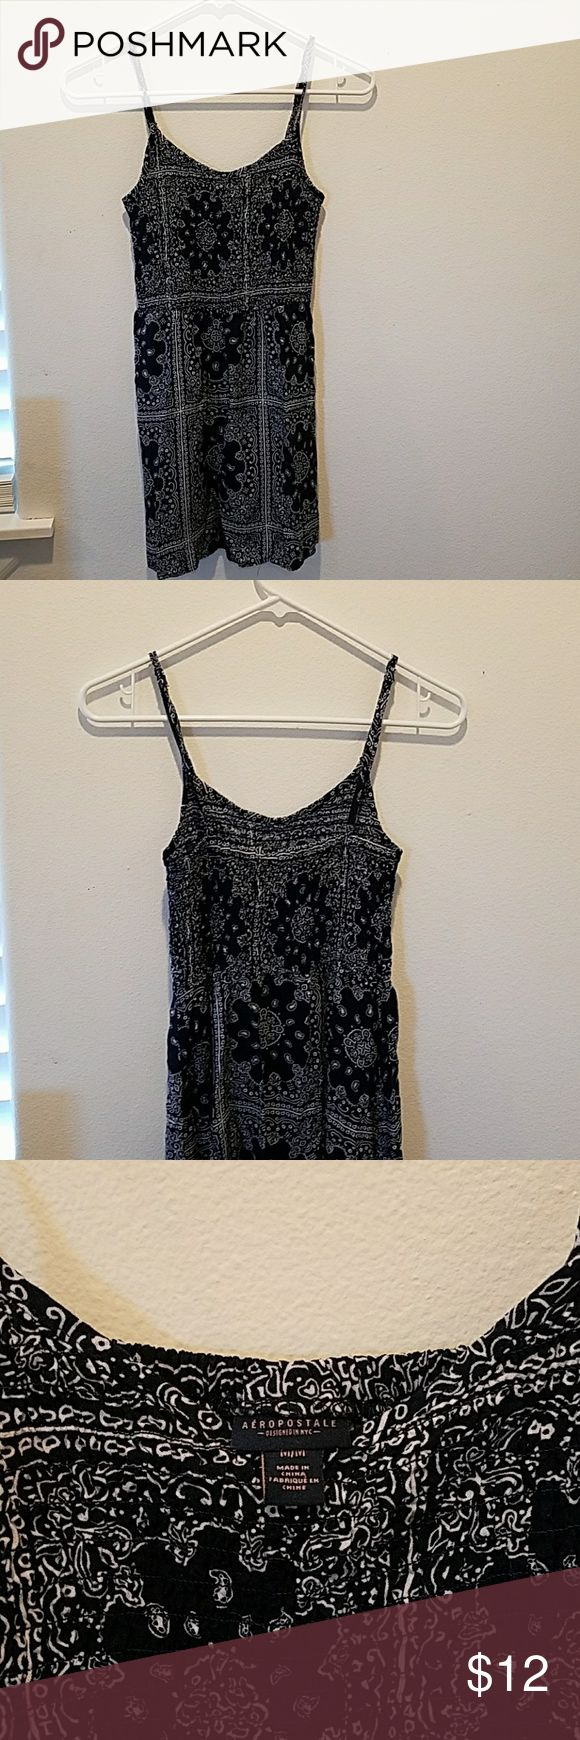 Fun boho top Super cute handkerchief pattern spaghetti strap top, could also be a tunic. Worn just a couple of times and in perfect condition.  Tag says size M but fits more like a small. This top is a must have for summer and fall. Aeropostale Tops Tank Tops